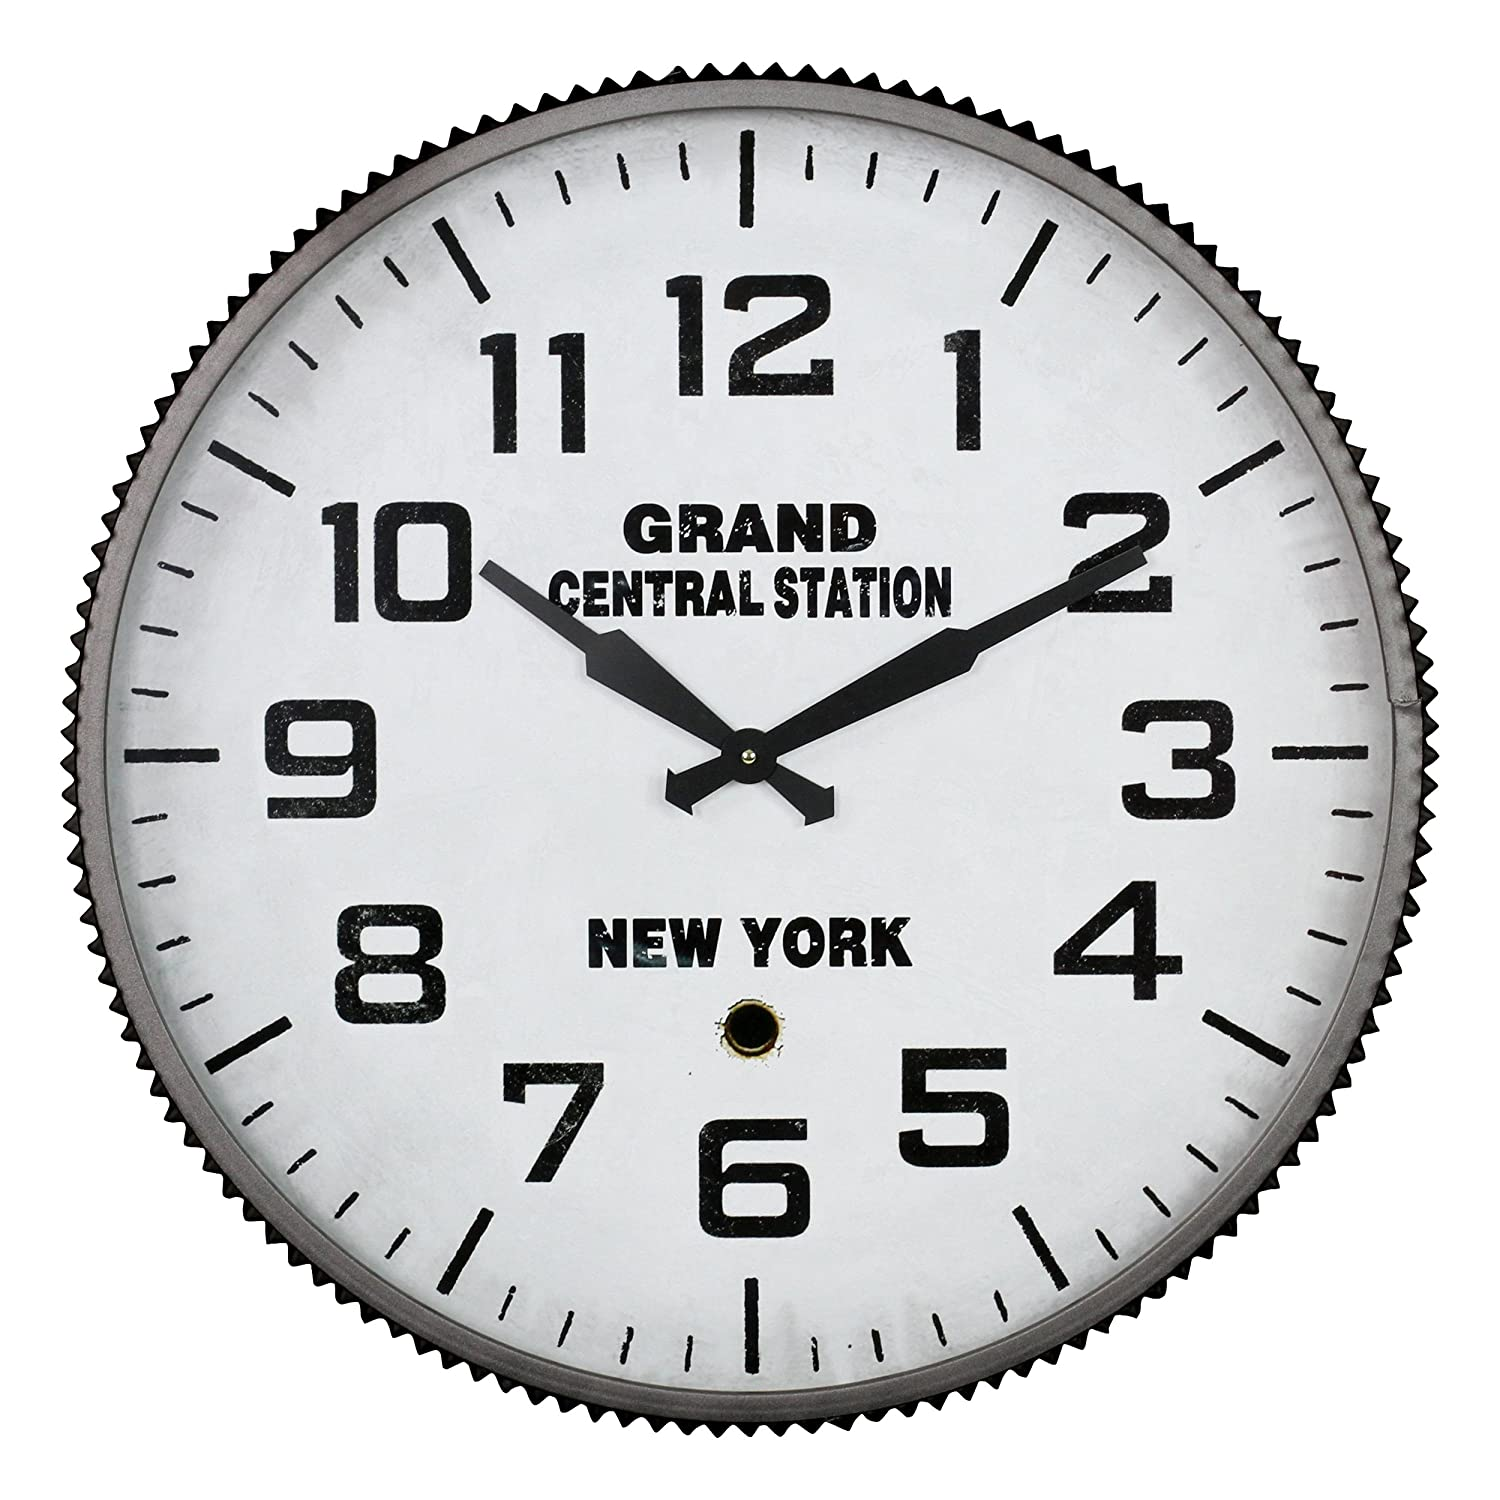 Amazon aspire wall clock grand central station gray home amazon aspire wall clock grand central station gray home kitchen amipublicfo Choice Image